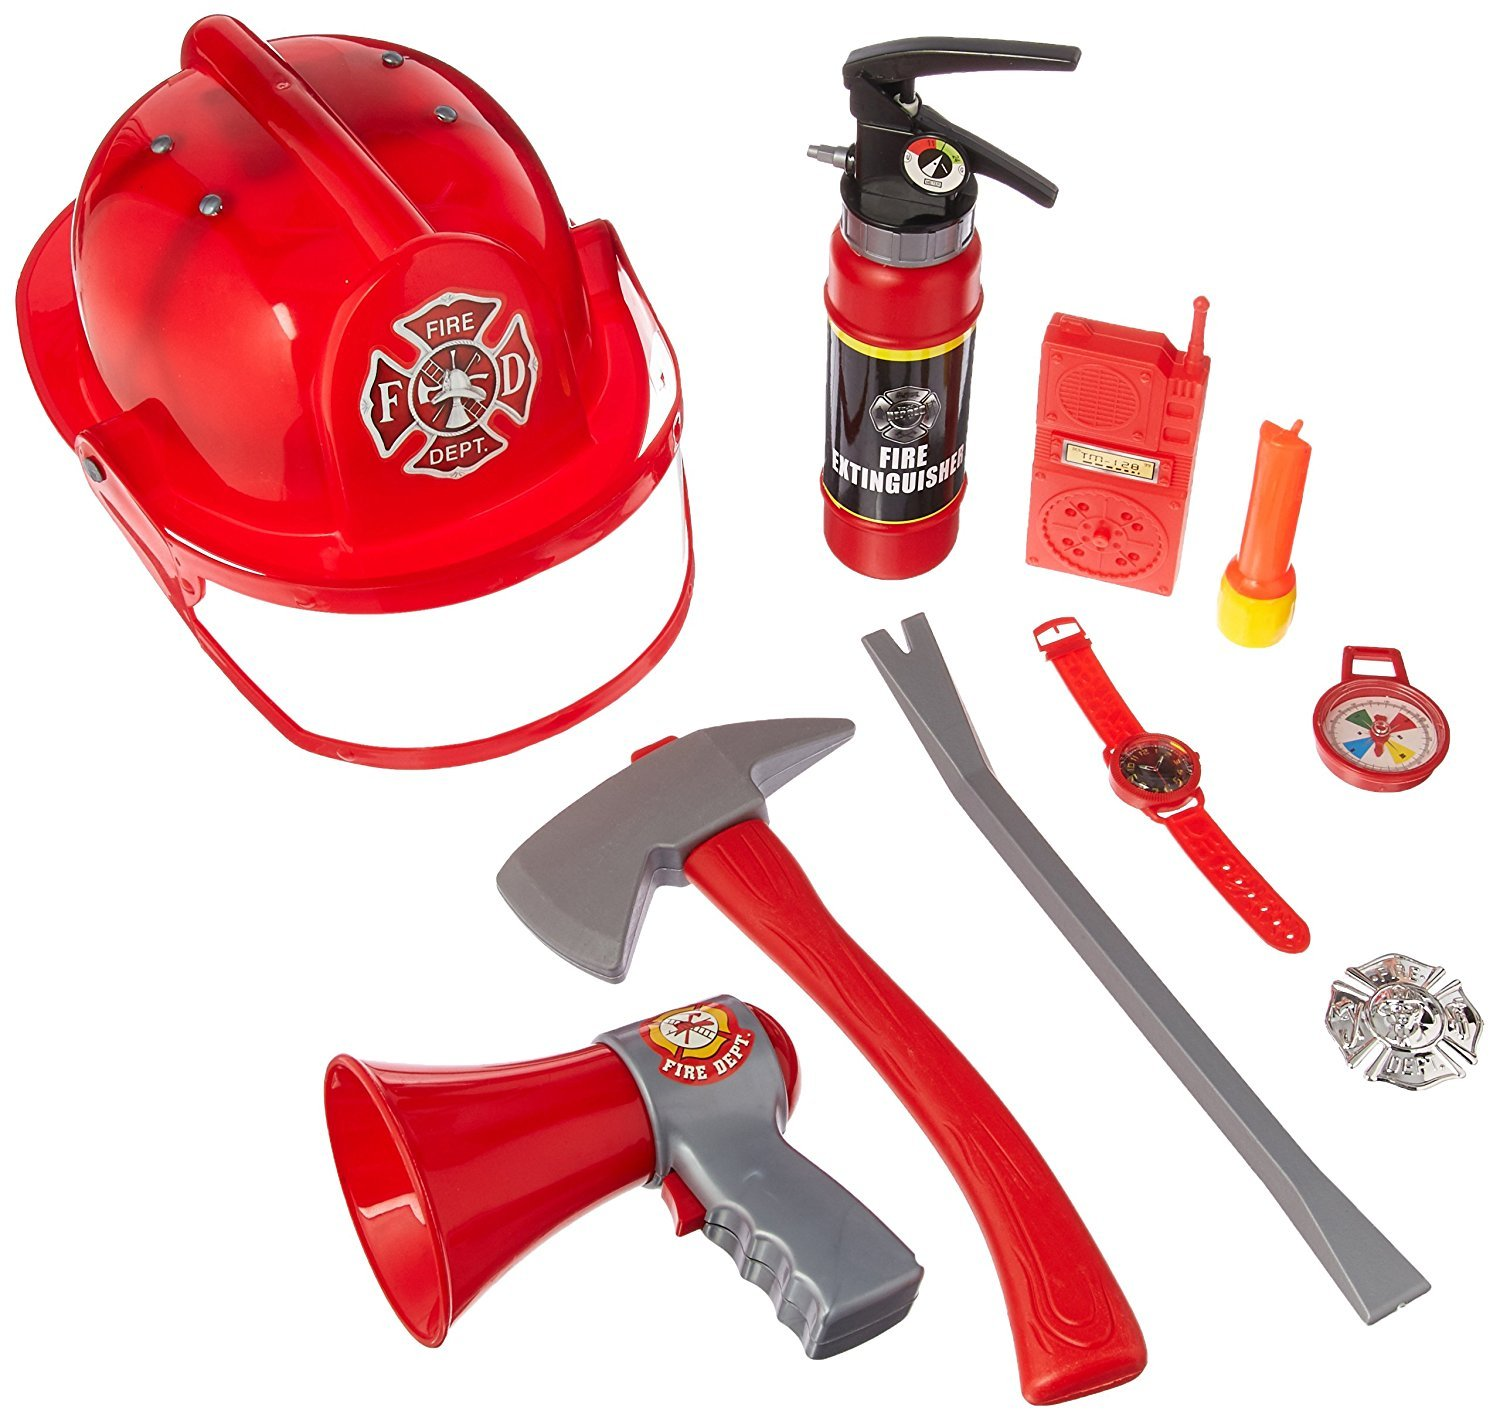 168b10c367 Amazon.com: Liberty Imports 10 Pcs Fireman Gear Firefighter Costume Role  Play Toy Set for Kids with Helmet and Accessories: Toys & Games